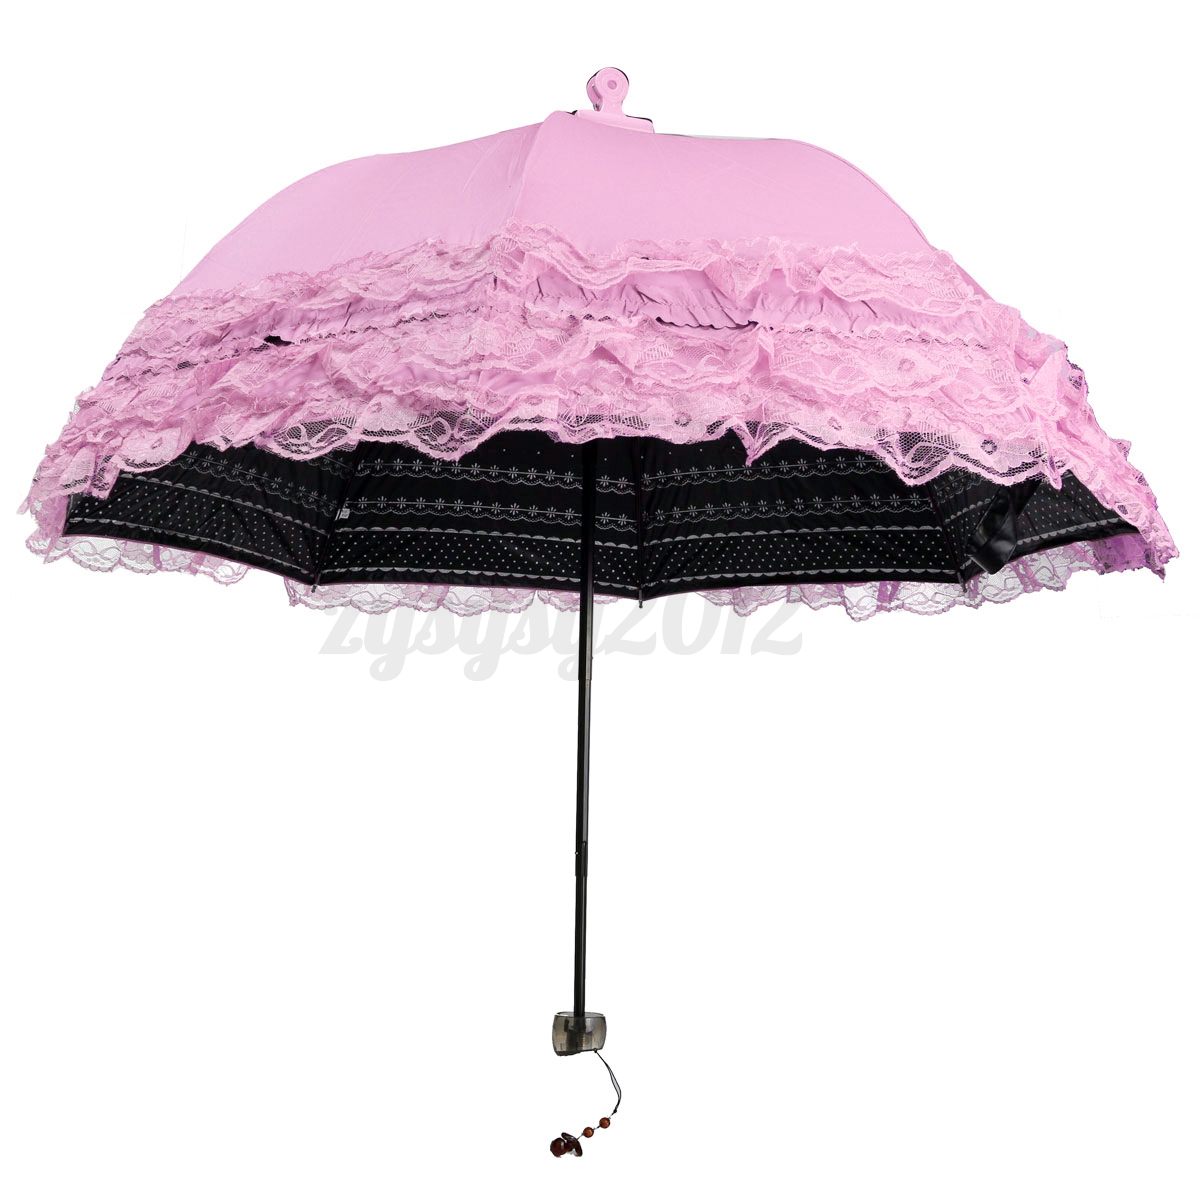 parapluie parasol ombrelle umbrella anti vent uv soleil. Black Bedroom Furniture Sets. Home Design Ideas